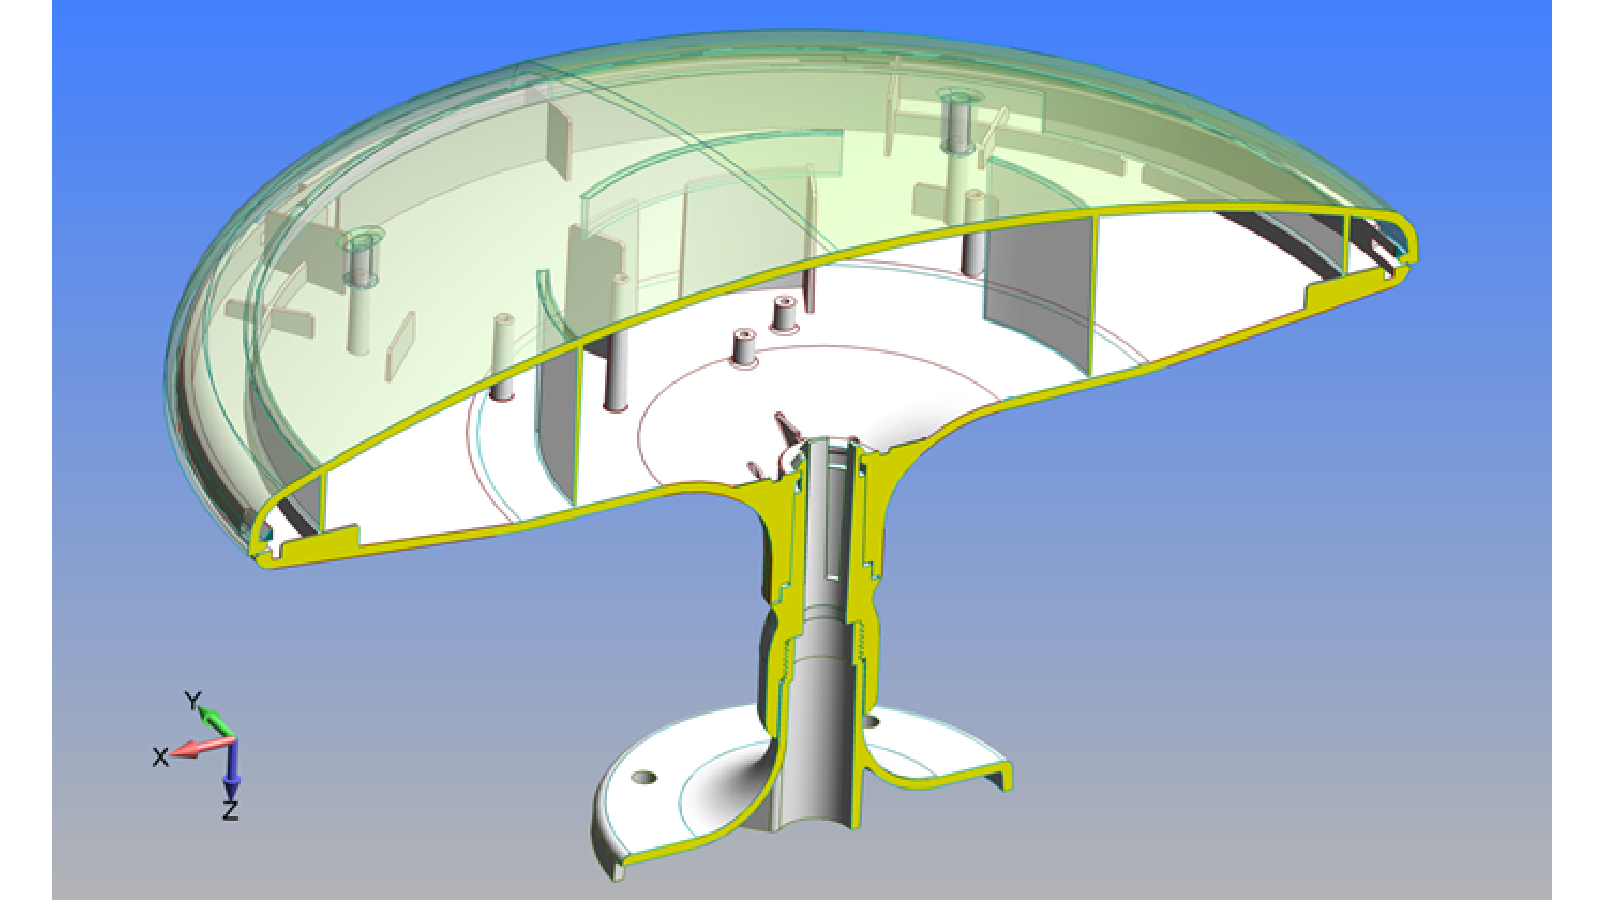 Initial CAD geometry for modern all-plastic antenna design